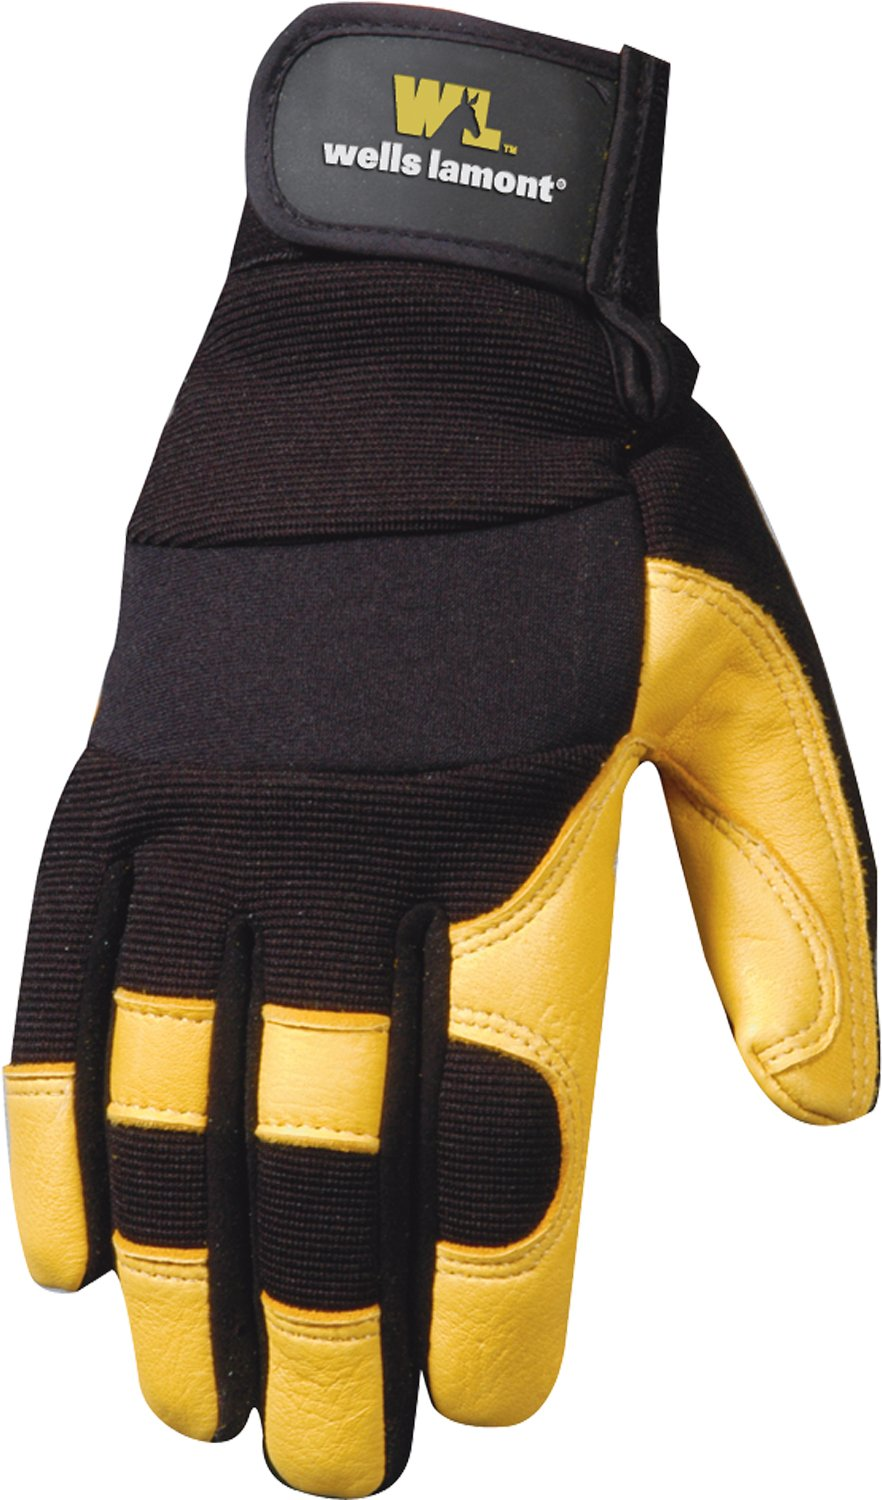 Wells Lamont Womens Deerskin Work Gloves Small Ultra Comfort Grain Wells Lamont Gloves glove; womens gloves; kinco gloves; ironclad; landscaping 3215S